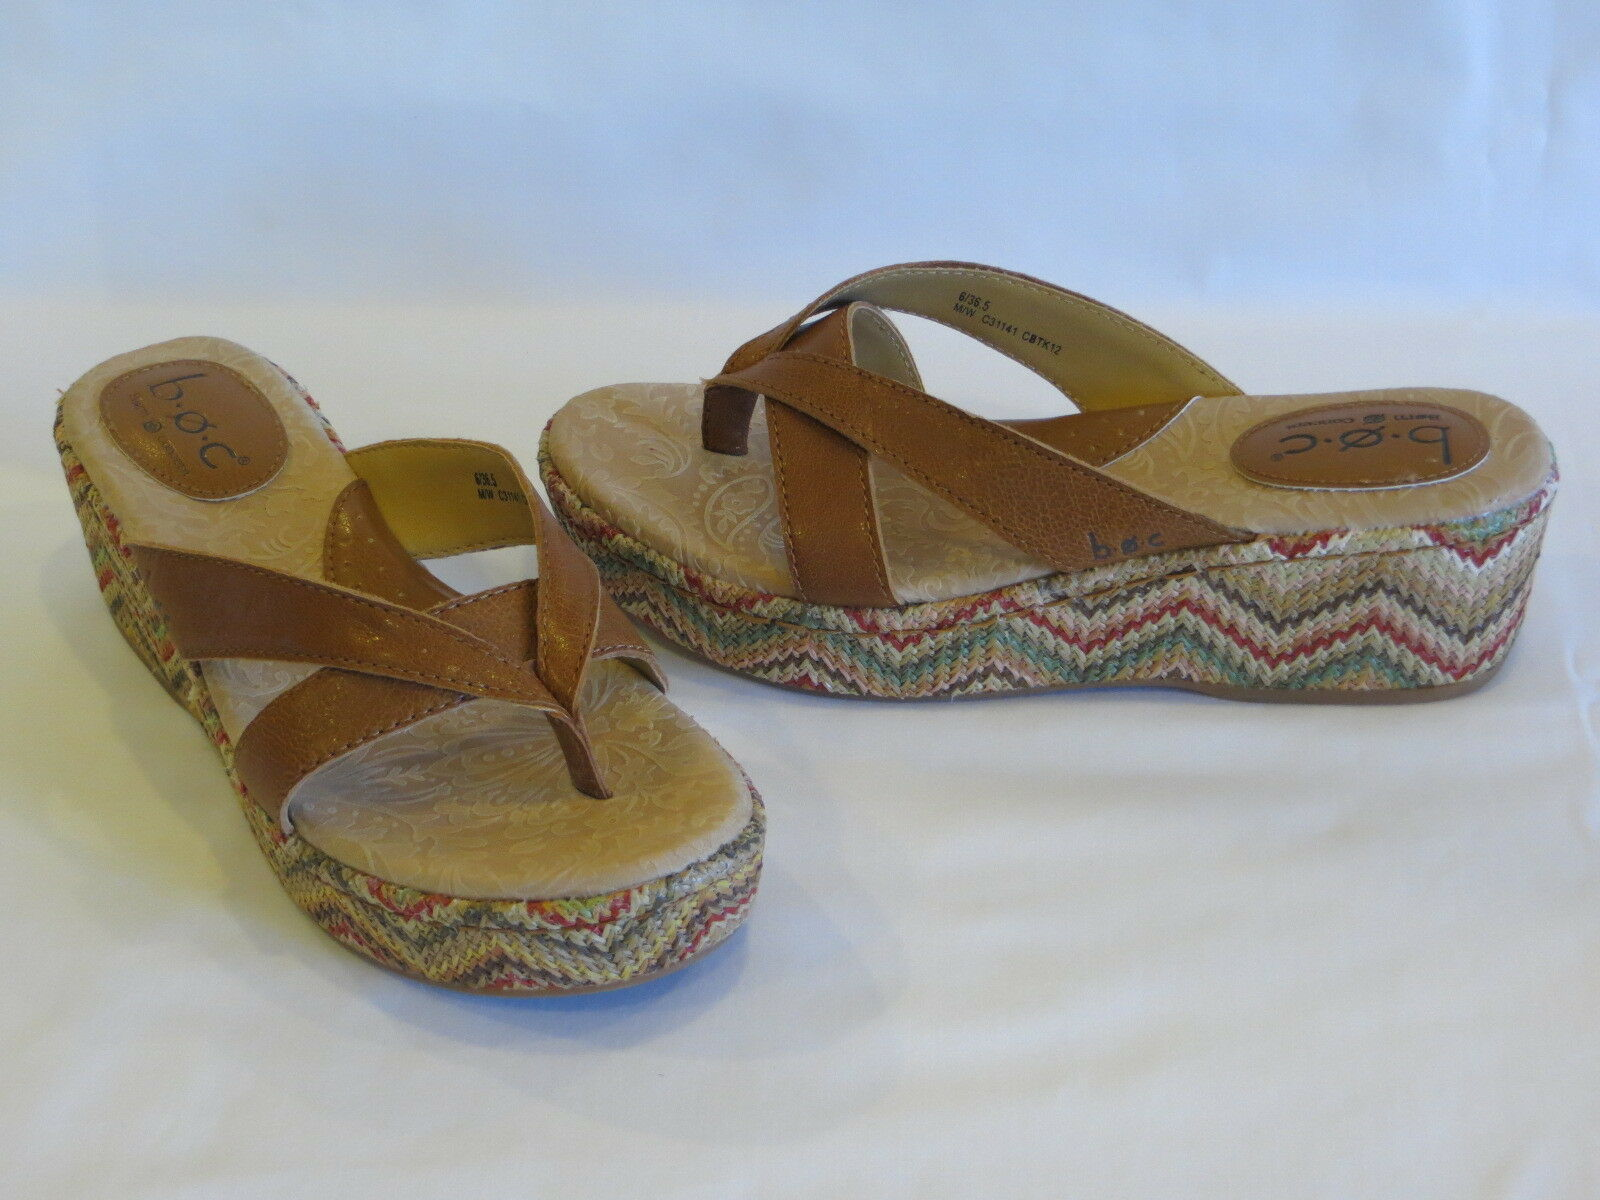 B.O.C. BORN Concept Brown/Multi Leather/Fabric Strappy Thongs Wedge Heel - 6M/W